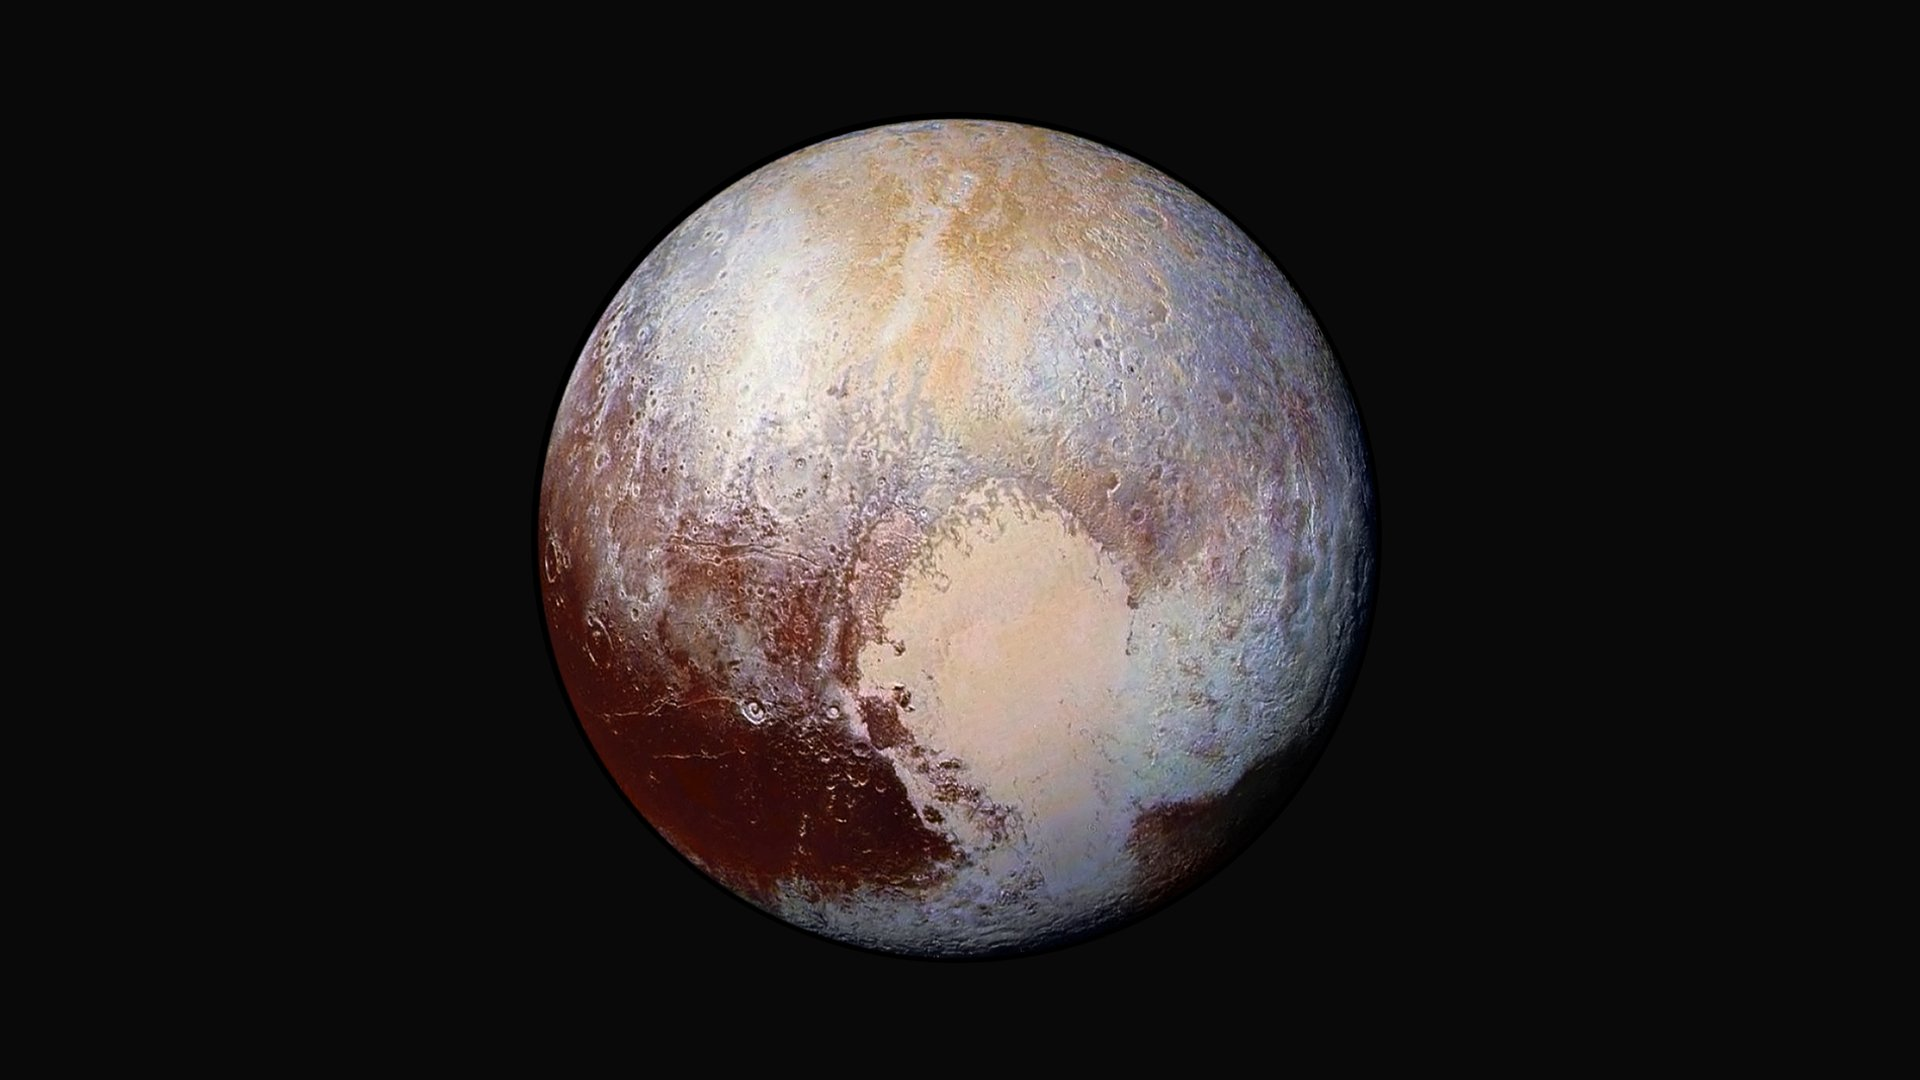 Enhanced Color Image of Pluto Used Detect Differences in the Composition and Texture wallpaper